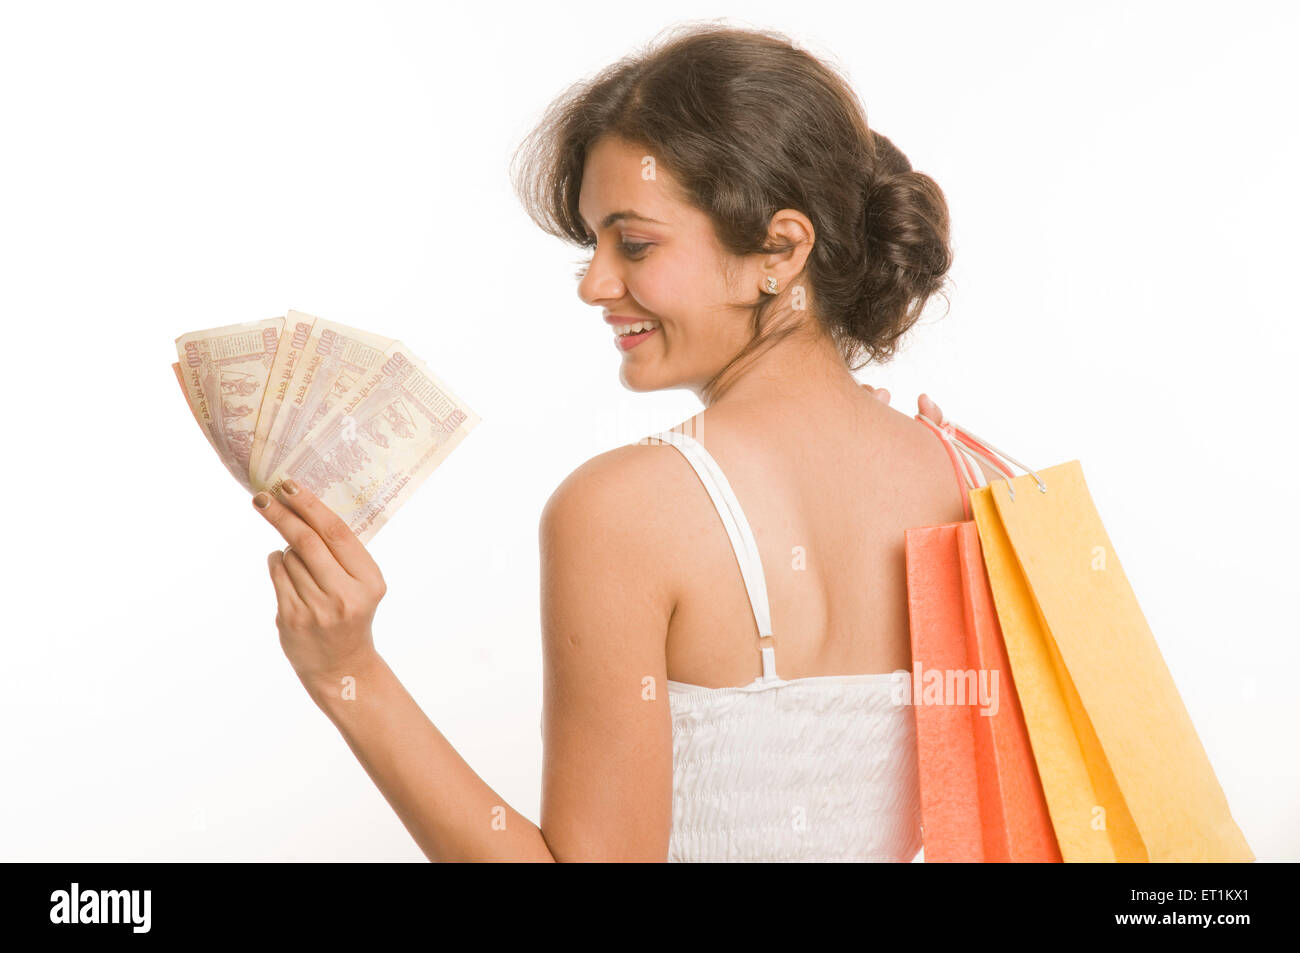 Girl with shopping bags and Five Hundred Rupee notes Pune Maharashtra India Asia MR#686 M June 2011 - Stock Image